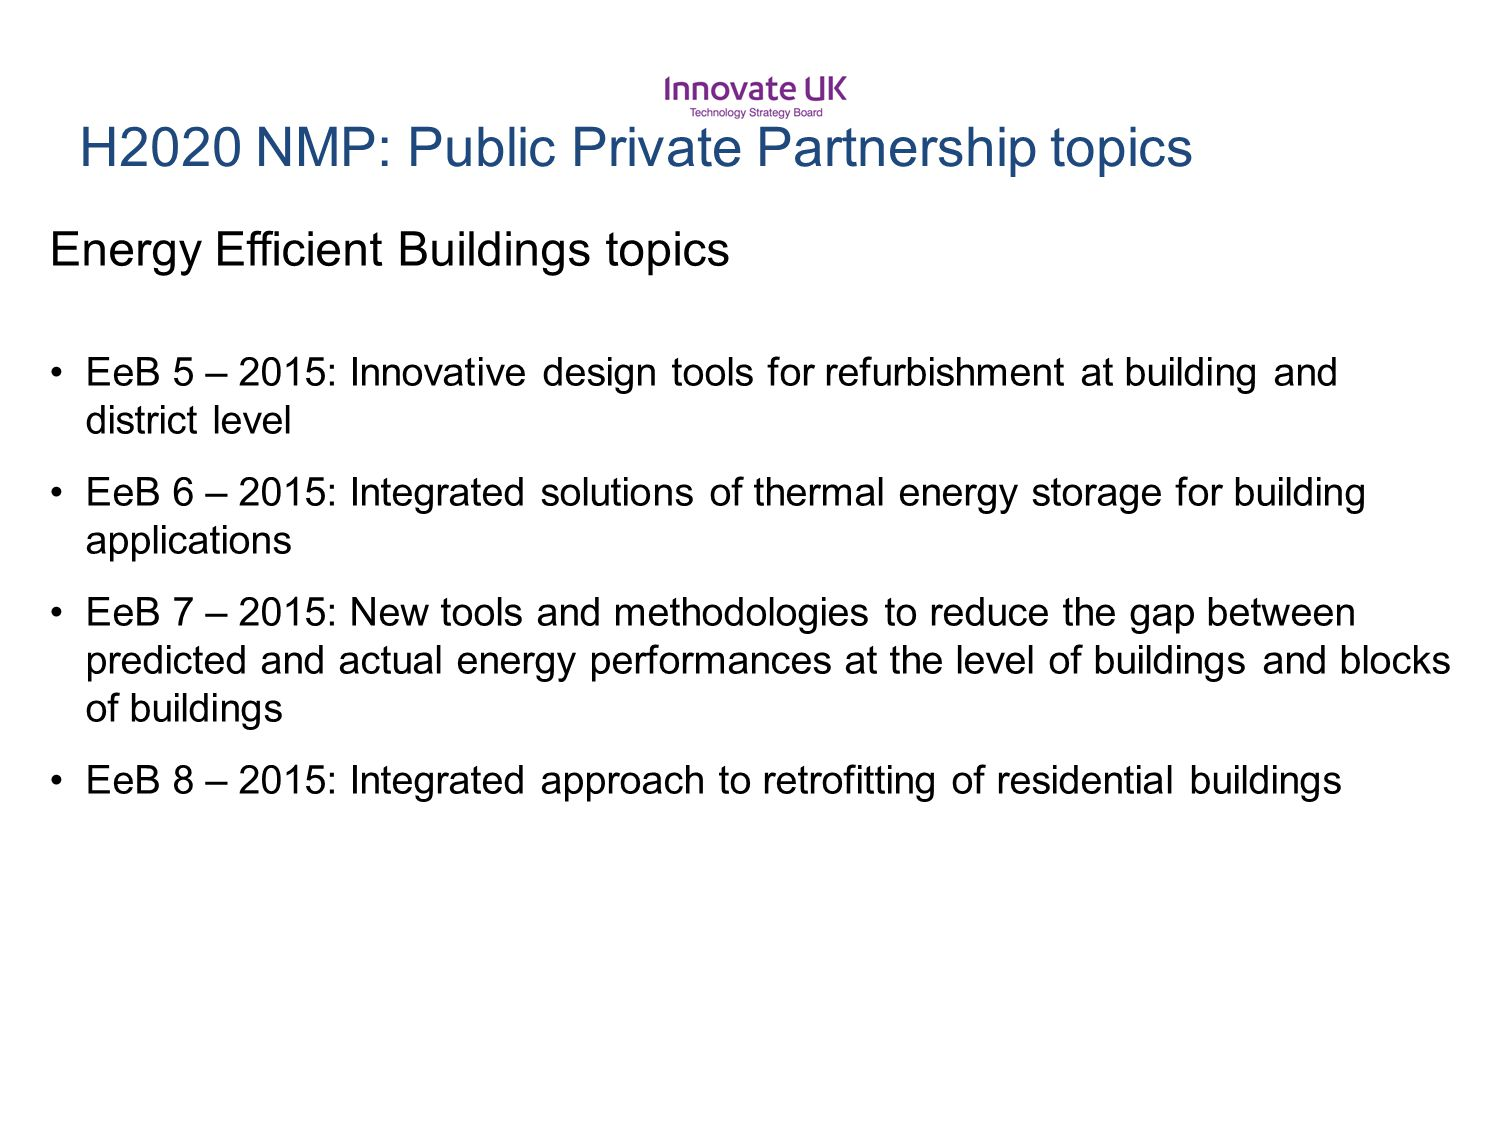 H2020 NMP: Public Private Partnership topics Energy Efficient Buildings topics EeB 5 – 2015: Innovative design tools for refurbishment at building and